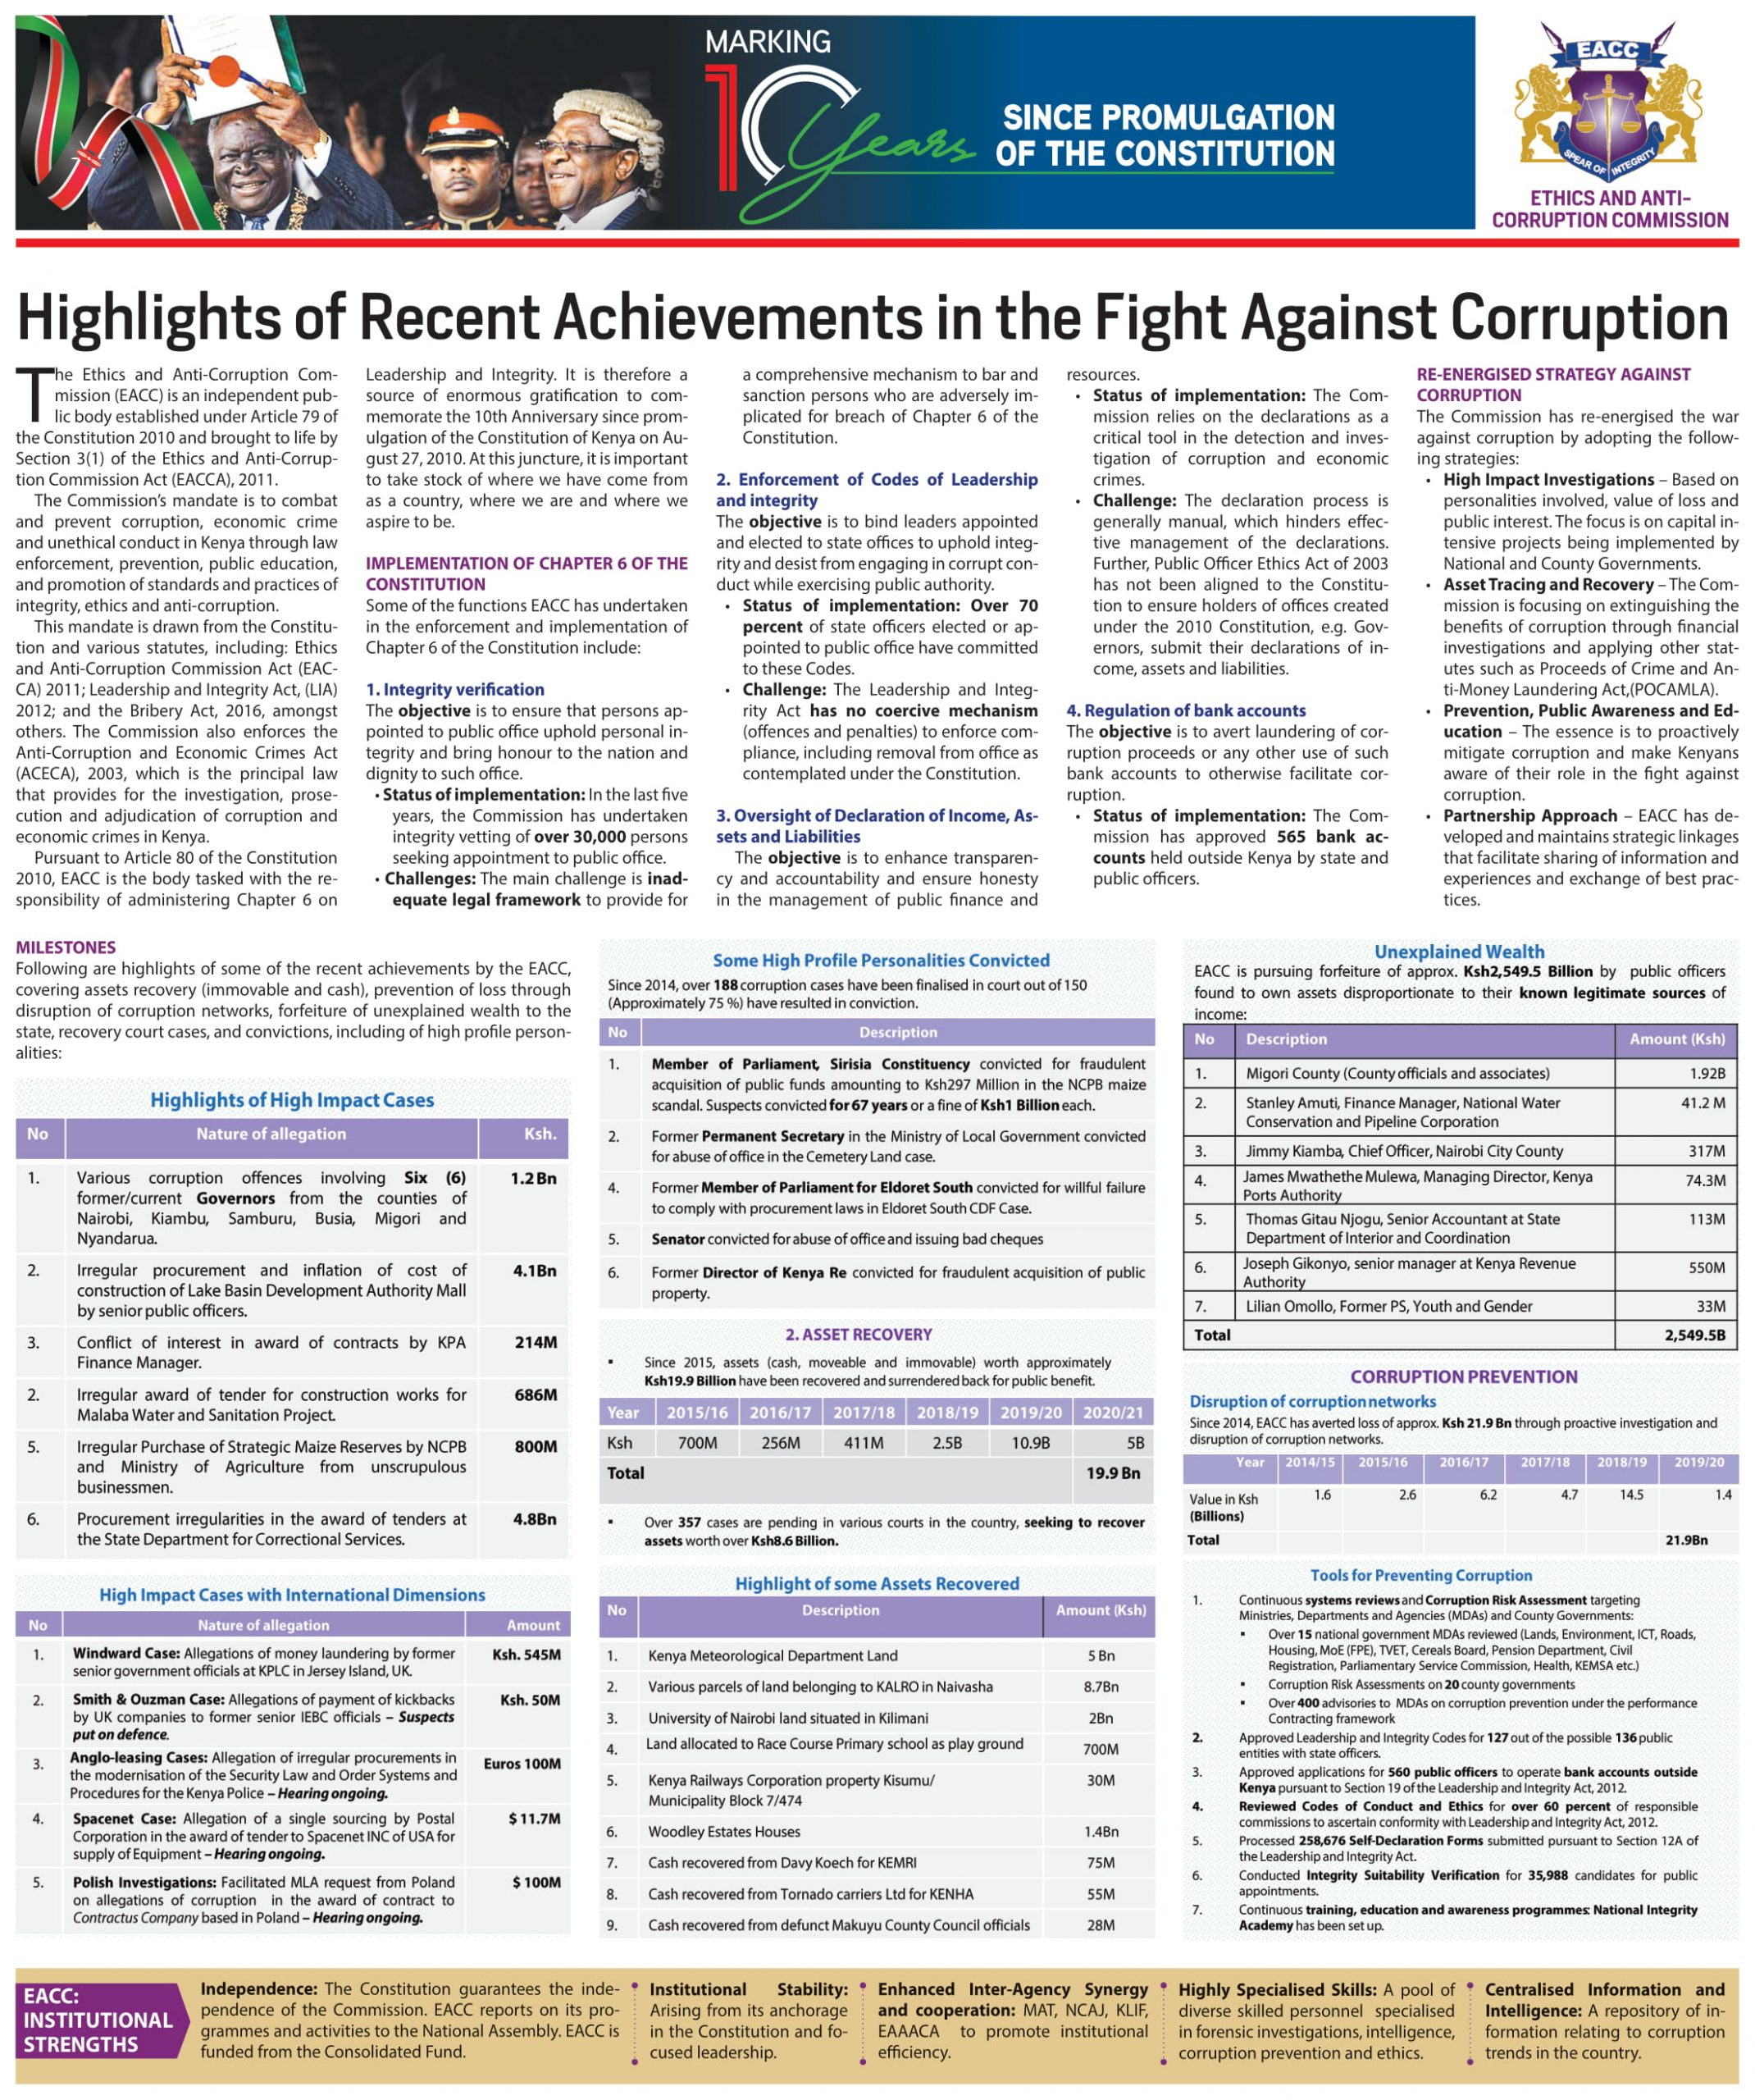 Newspaper Feature: Highlights of Recent Achievements in the Fight Against Corruption as we mark 10 Years since the Promulgation of the Constitution > Sunday Nation Newspaper